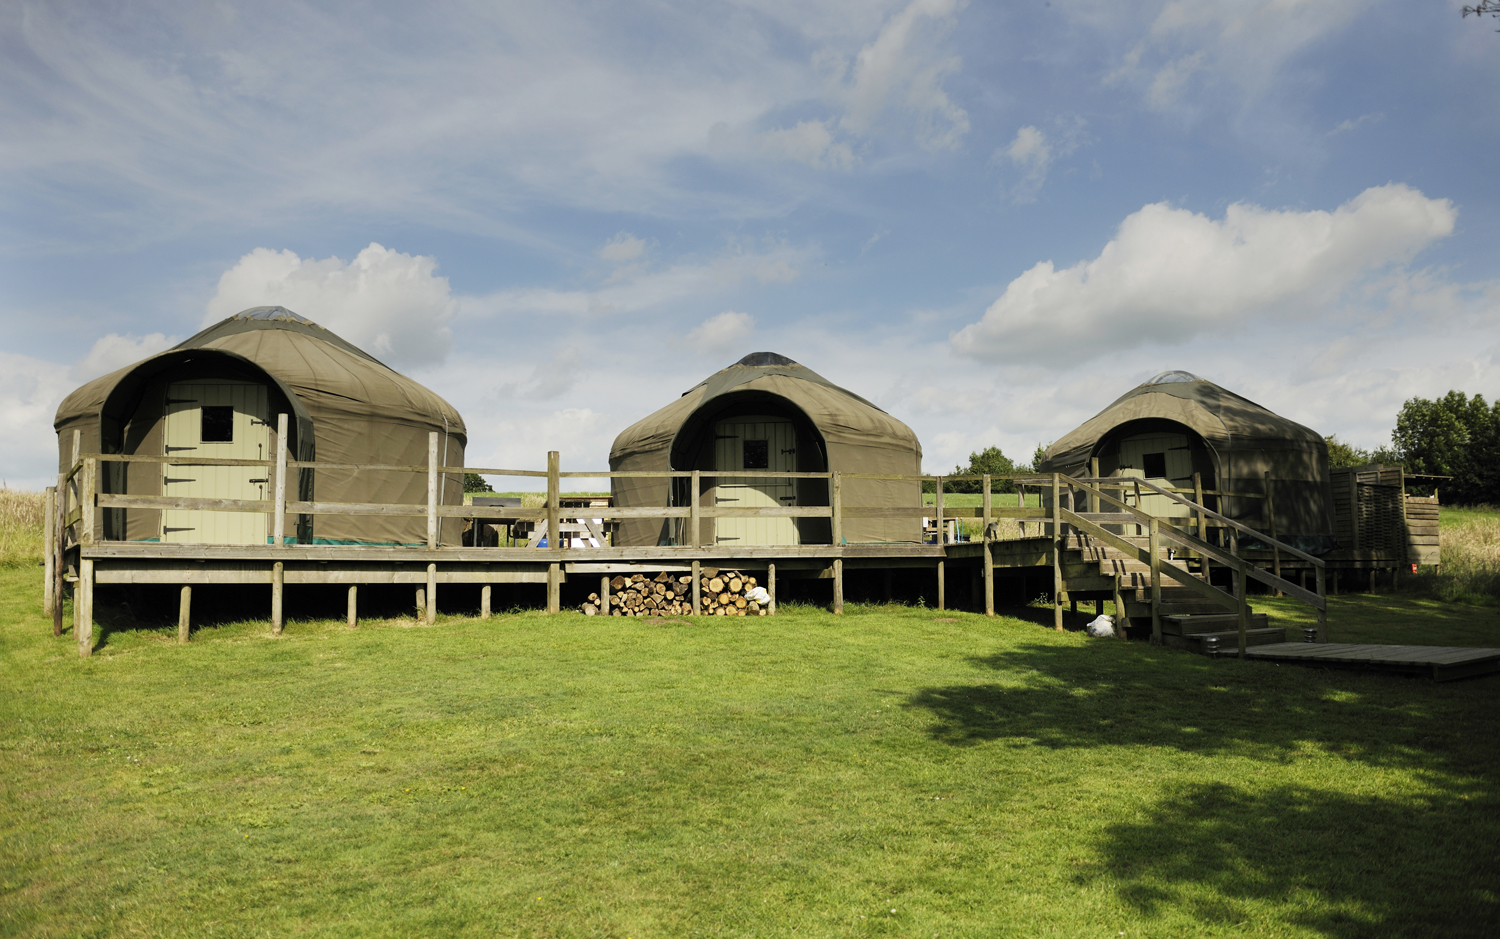 Withy Bed Yurts for Dorset country glamping holidays on the Stock Gaylard estate